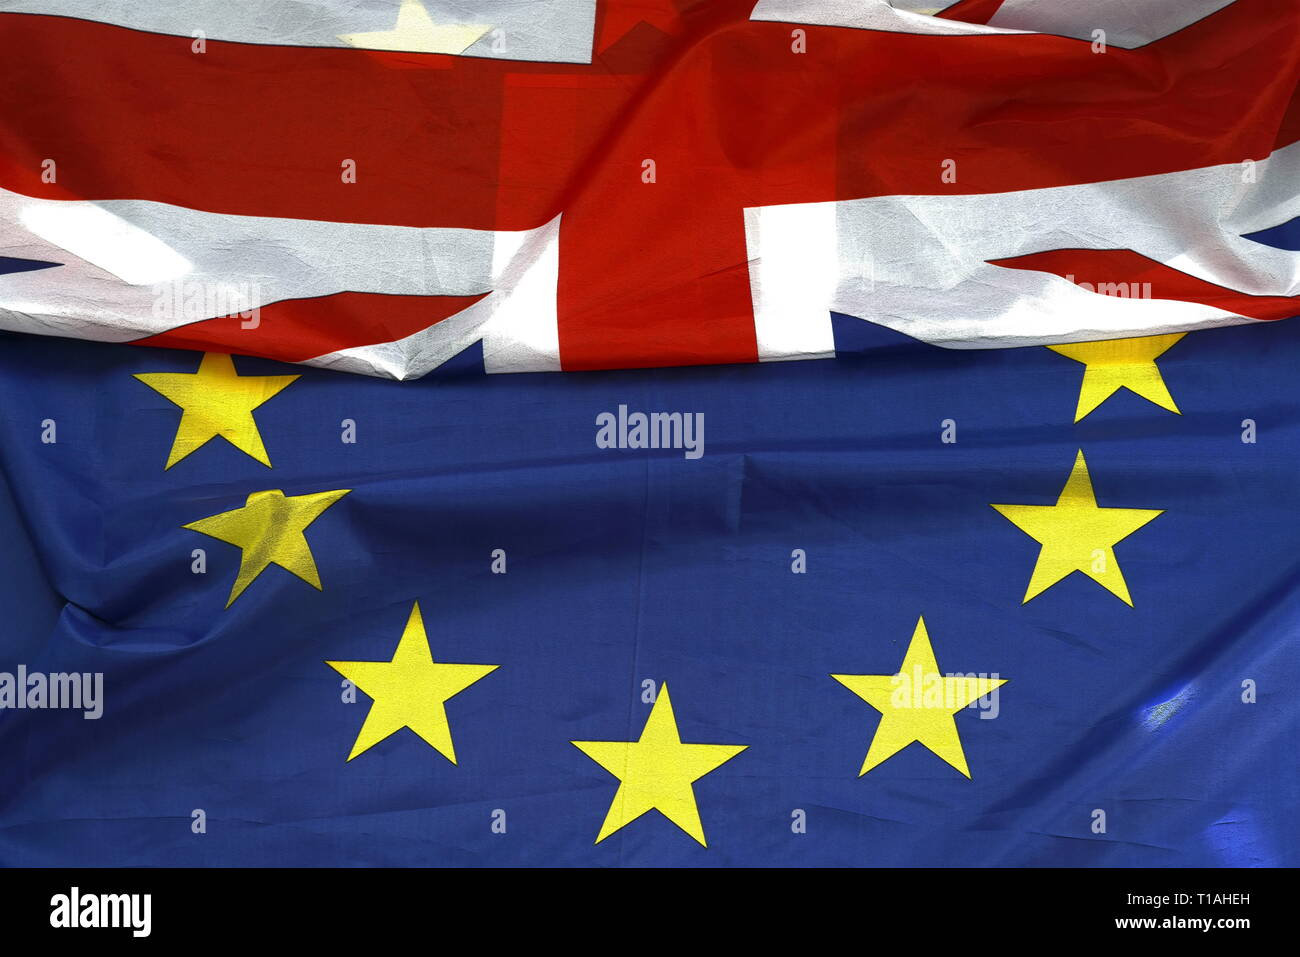 United Kingdom and European union flags combined - Stock Image